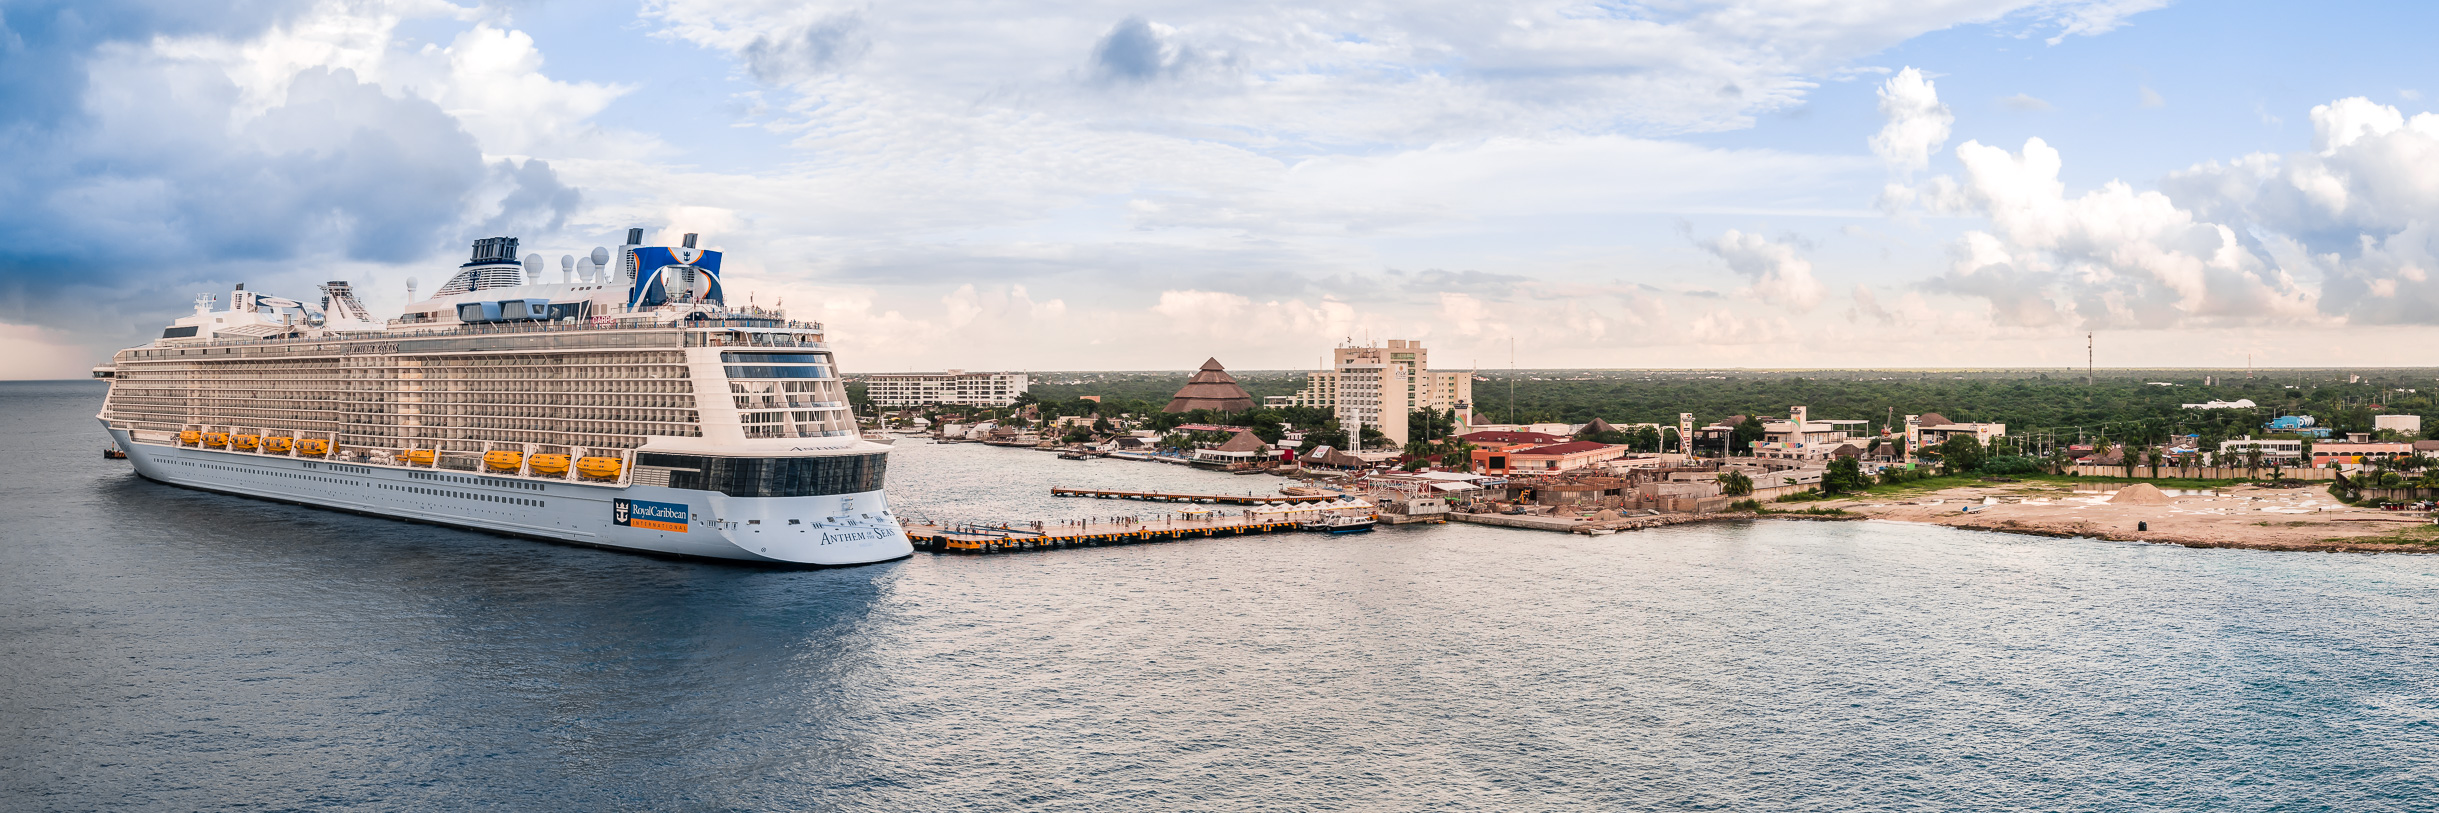 Royal Caribbean's cruise shipAnthem of the Seas docked in Cozumel, Mexico, as a late afternoon storm approaches the island.